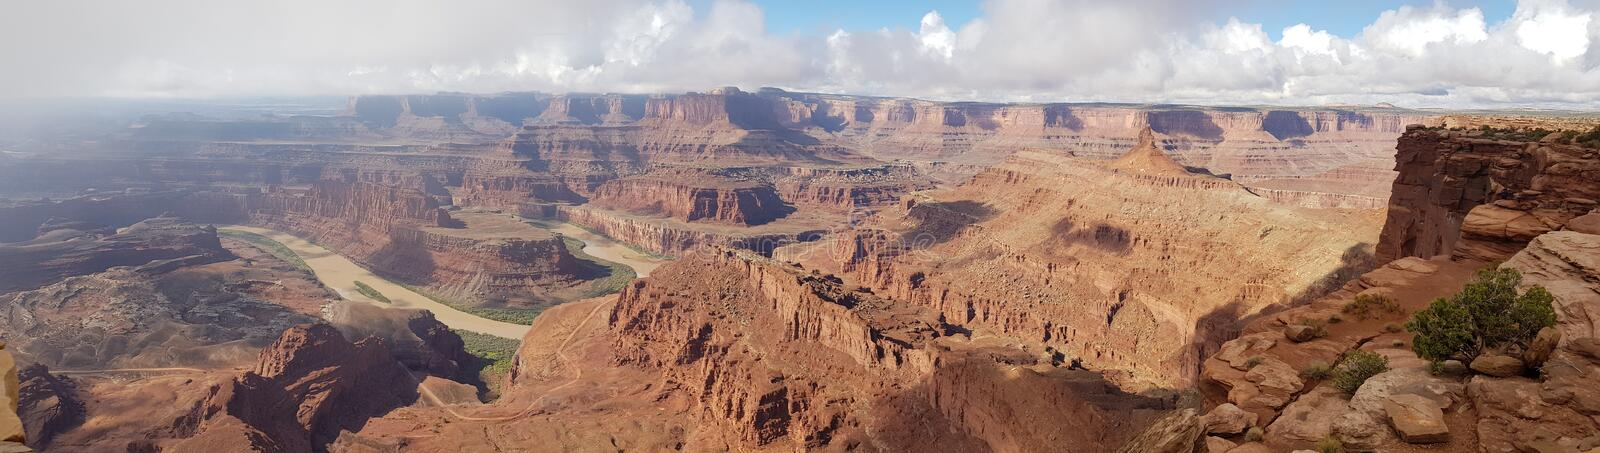 Dead Horse Point and the Colorado River royalty free stock photo